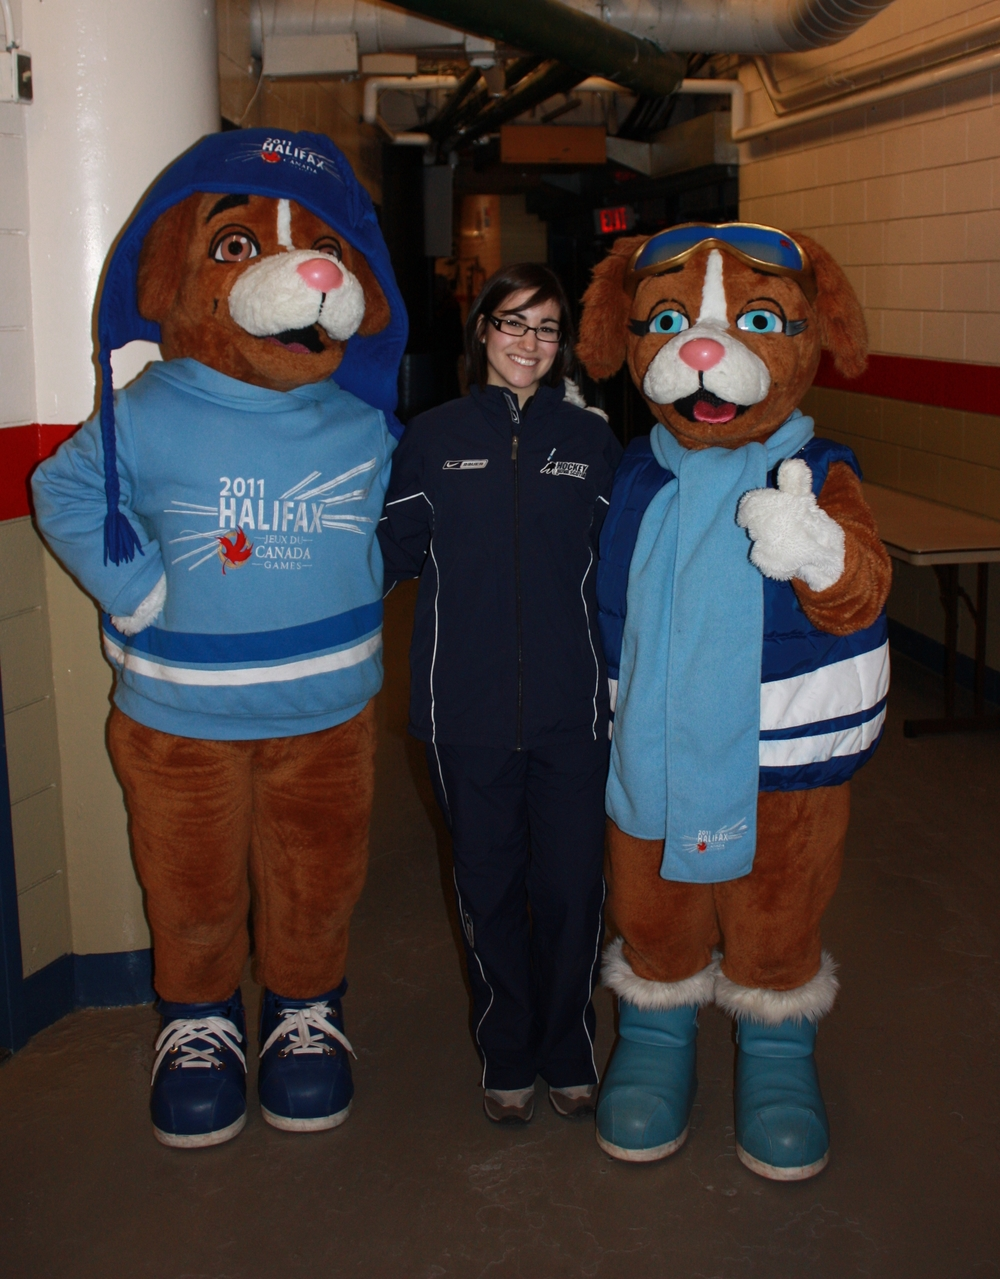 With the mascots of the 2011 Canada Winter Games, Halifax